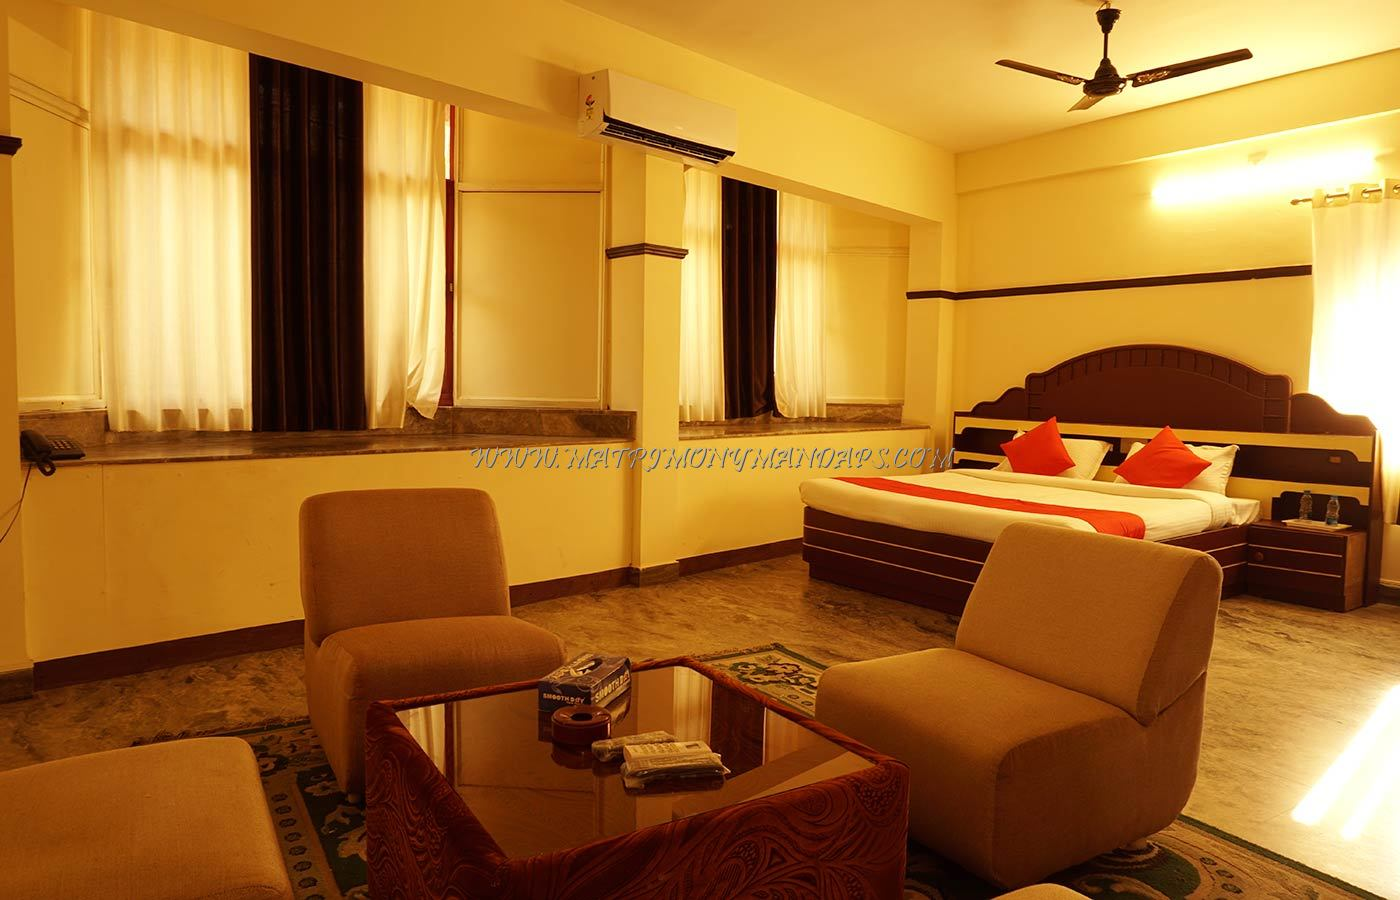 Find the availability of the Hotel Rvees Regency in East Nada, Guruvayoor and avail special offers